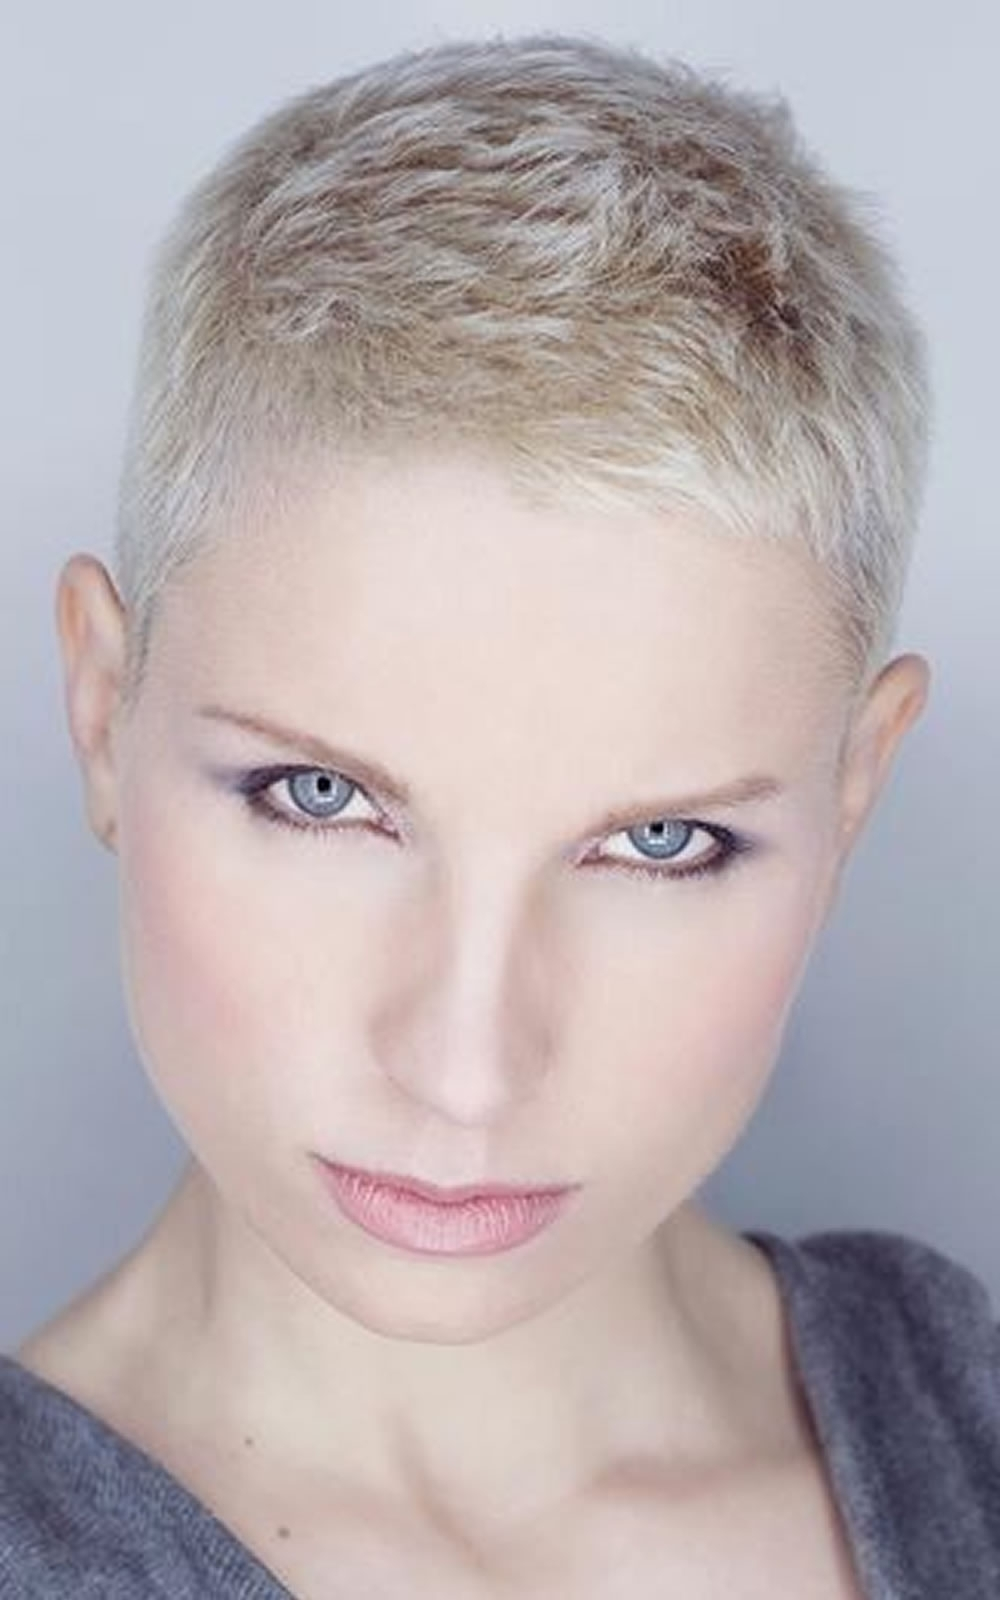 pixie haircut styles pixie style haircuts haircuts models ideas 1077